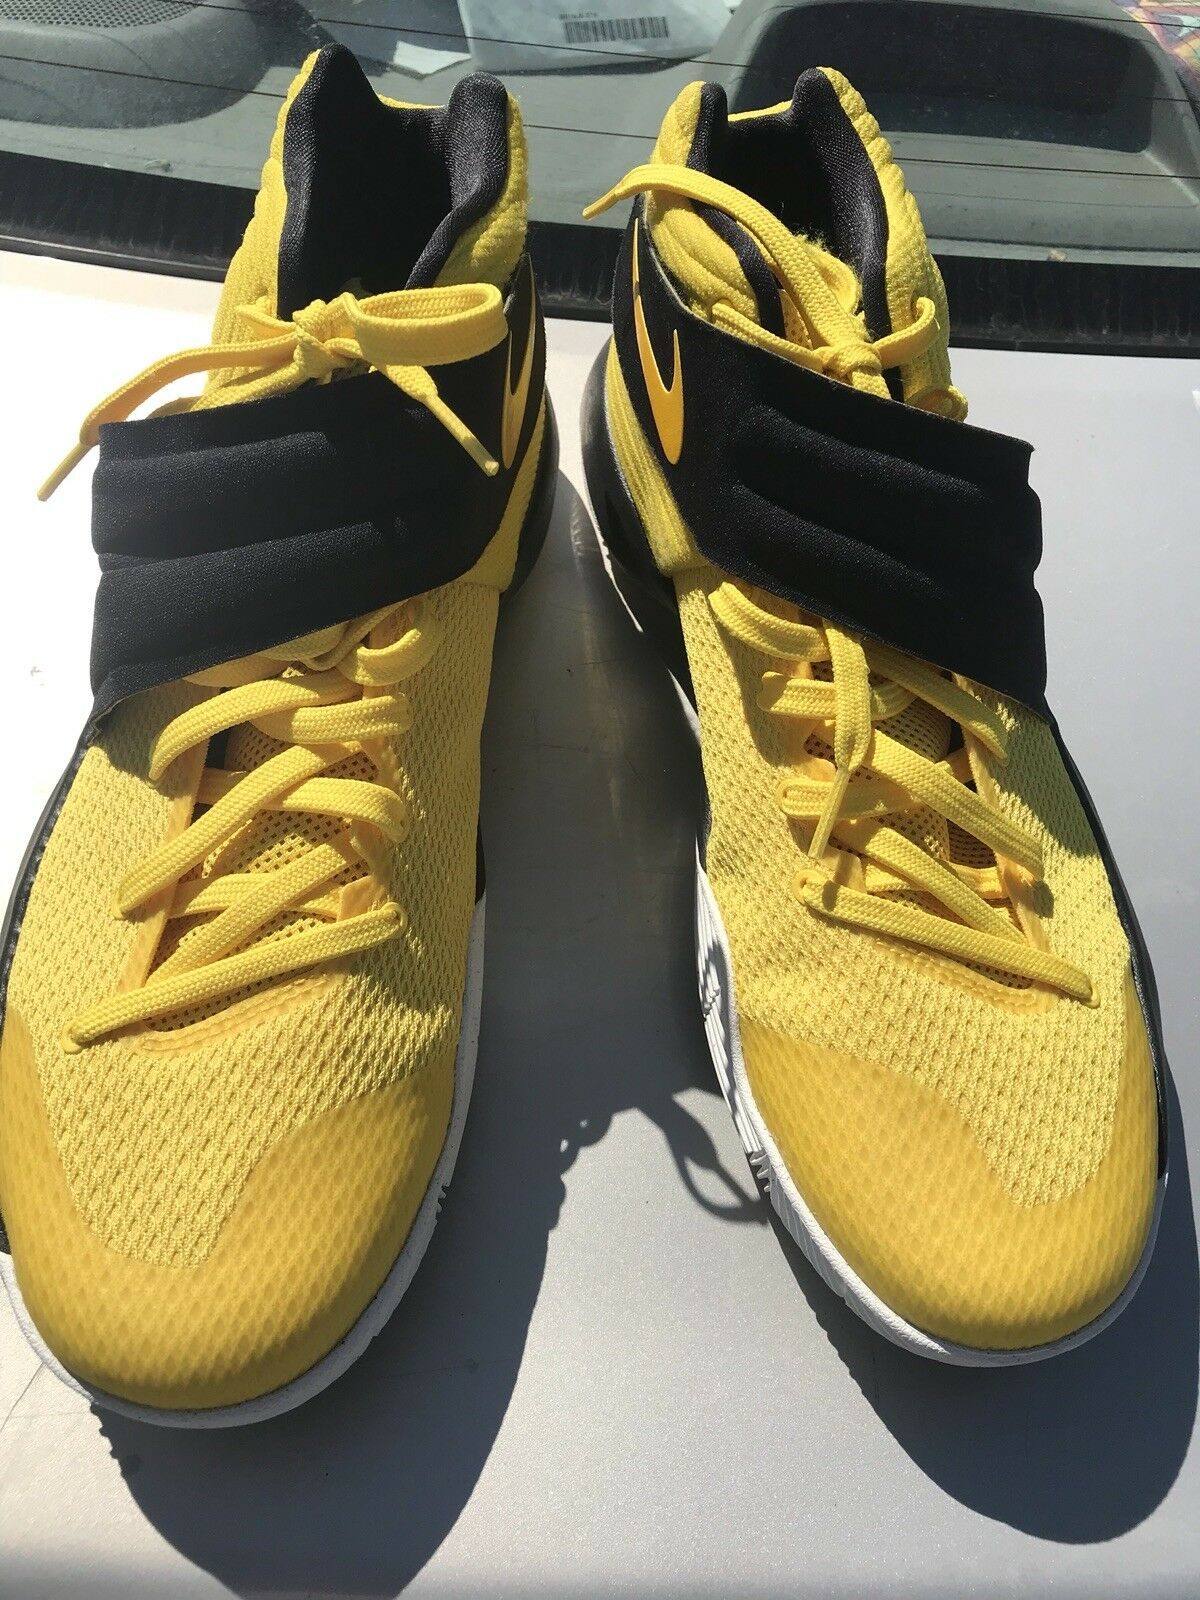 Basketball shoes size 11.5 mens